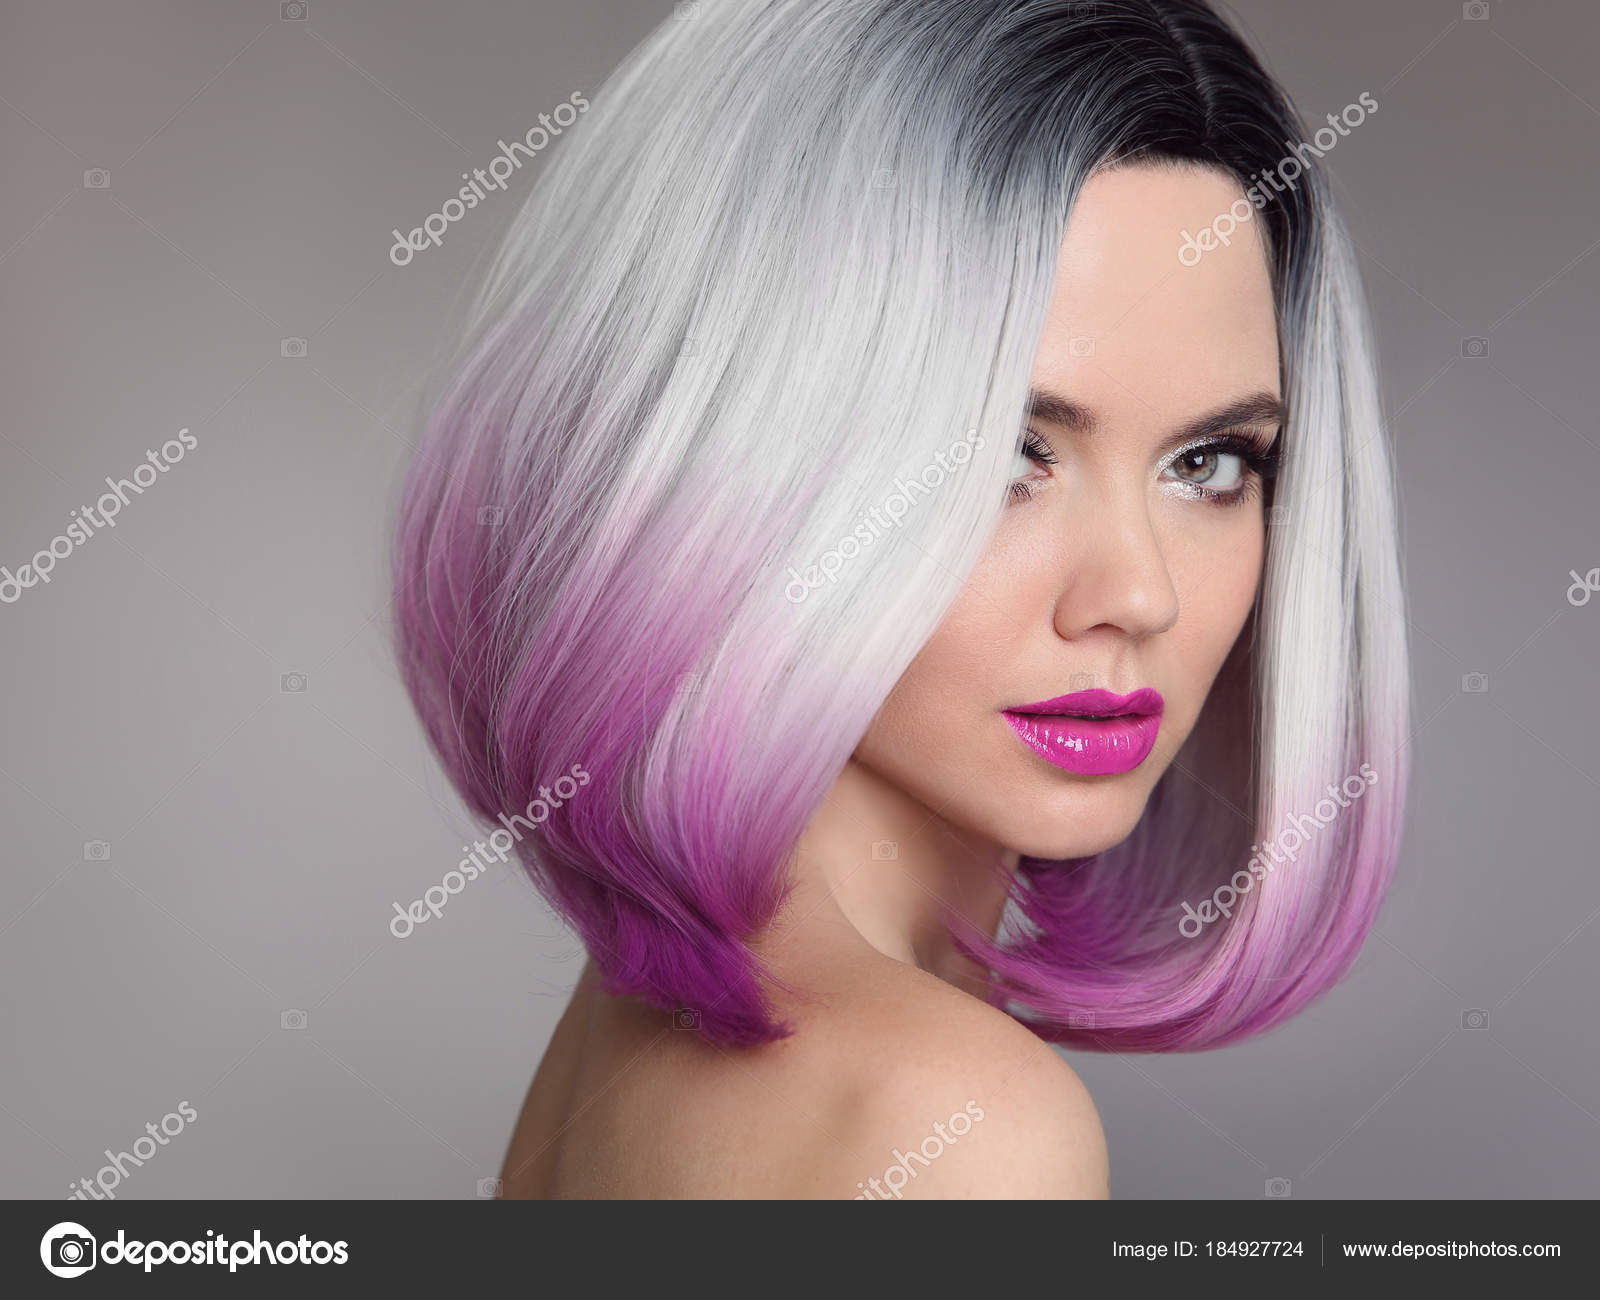 Ombre extensions with short hair